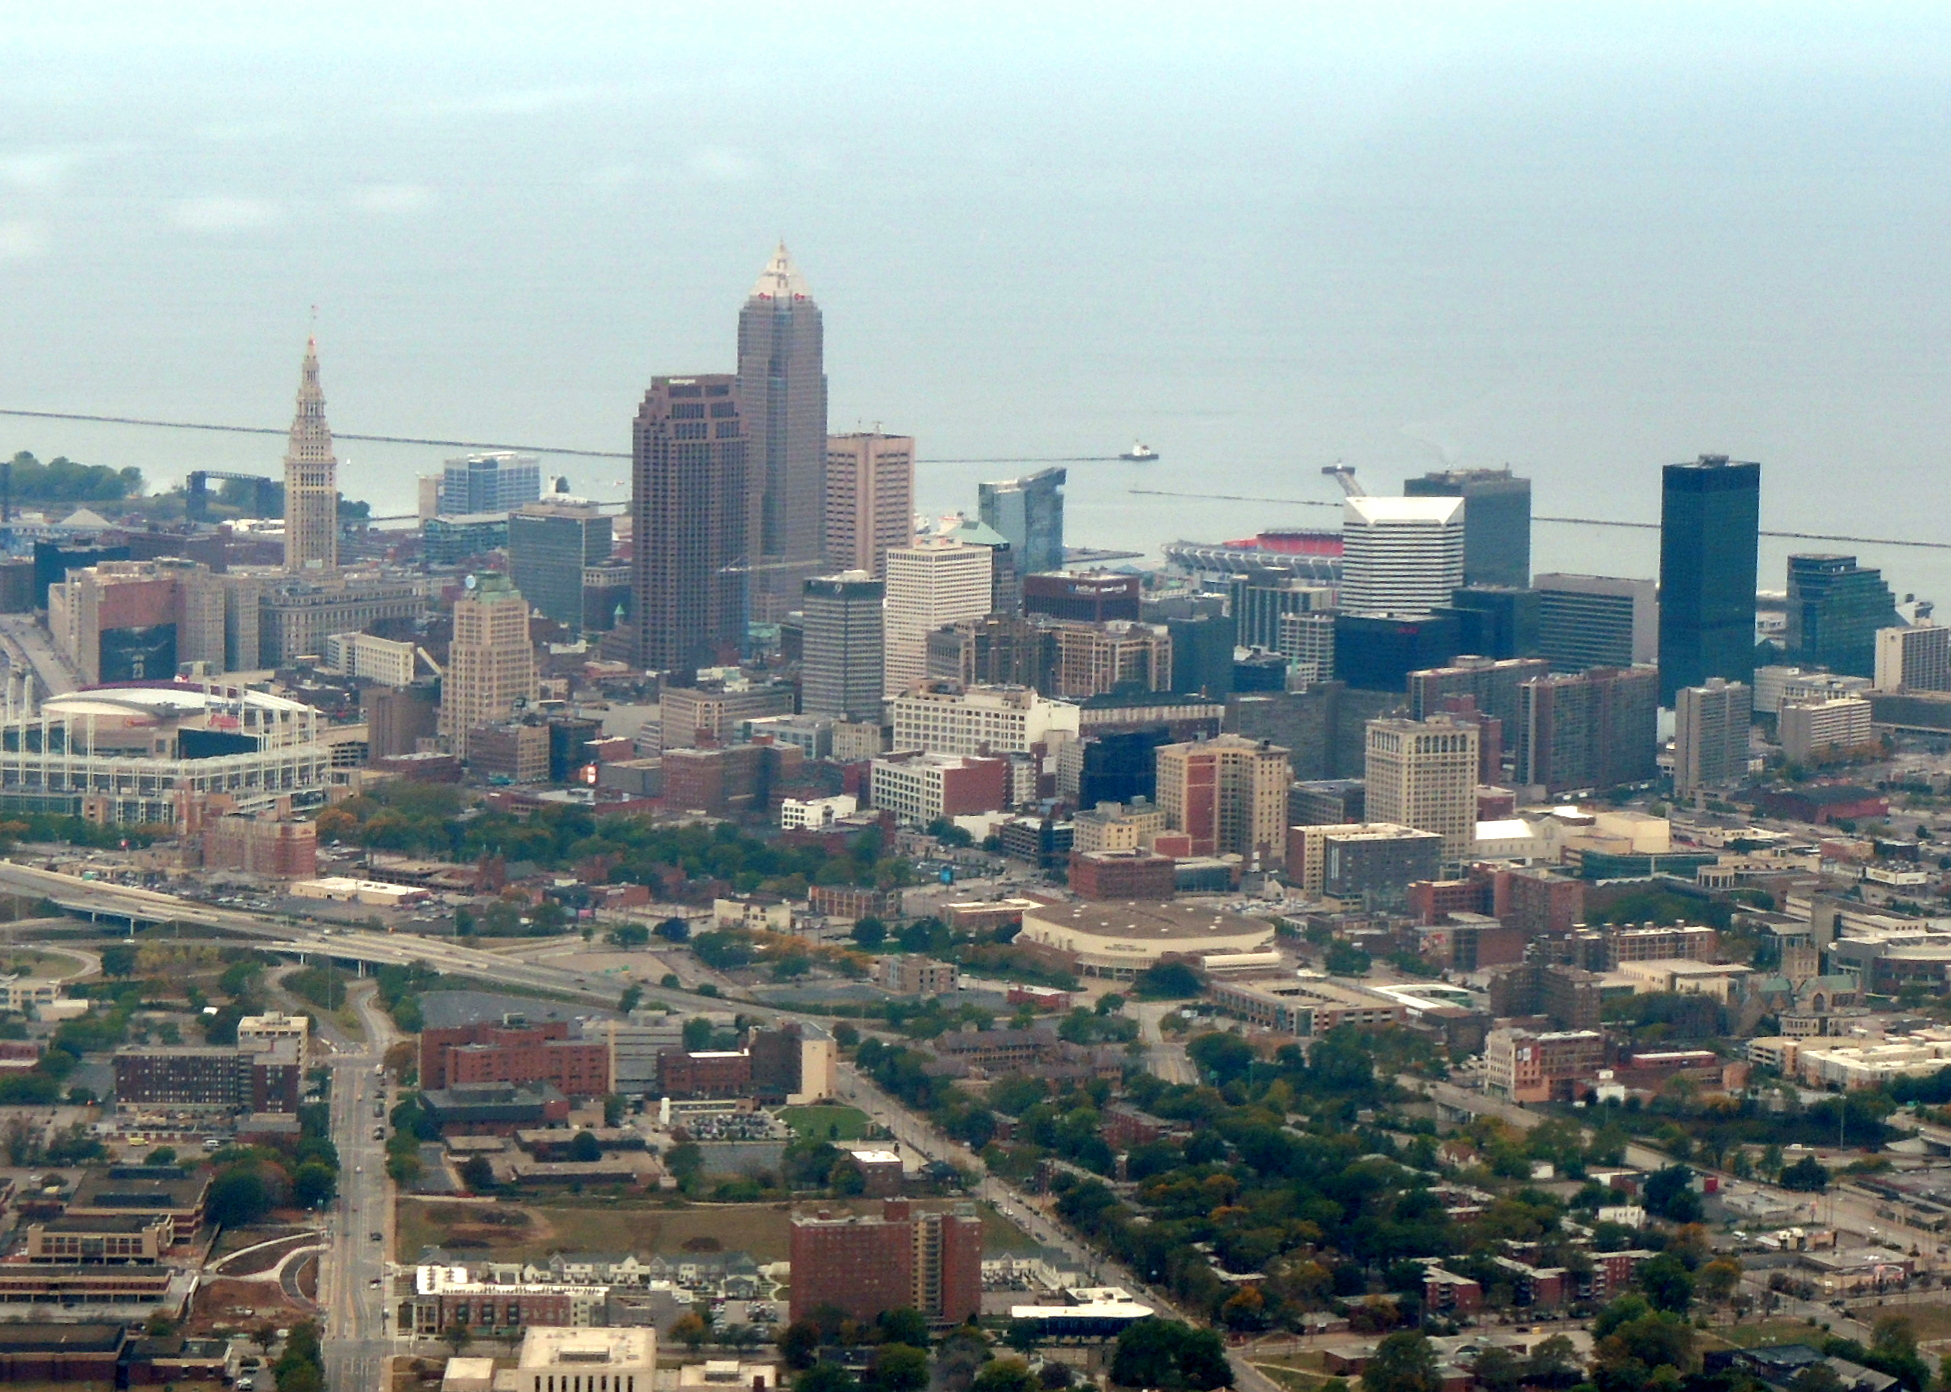 Cleveland Ohio with Lake Erie in the background